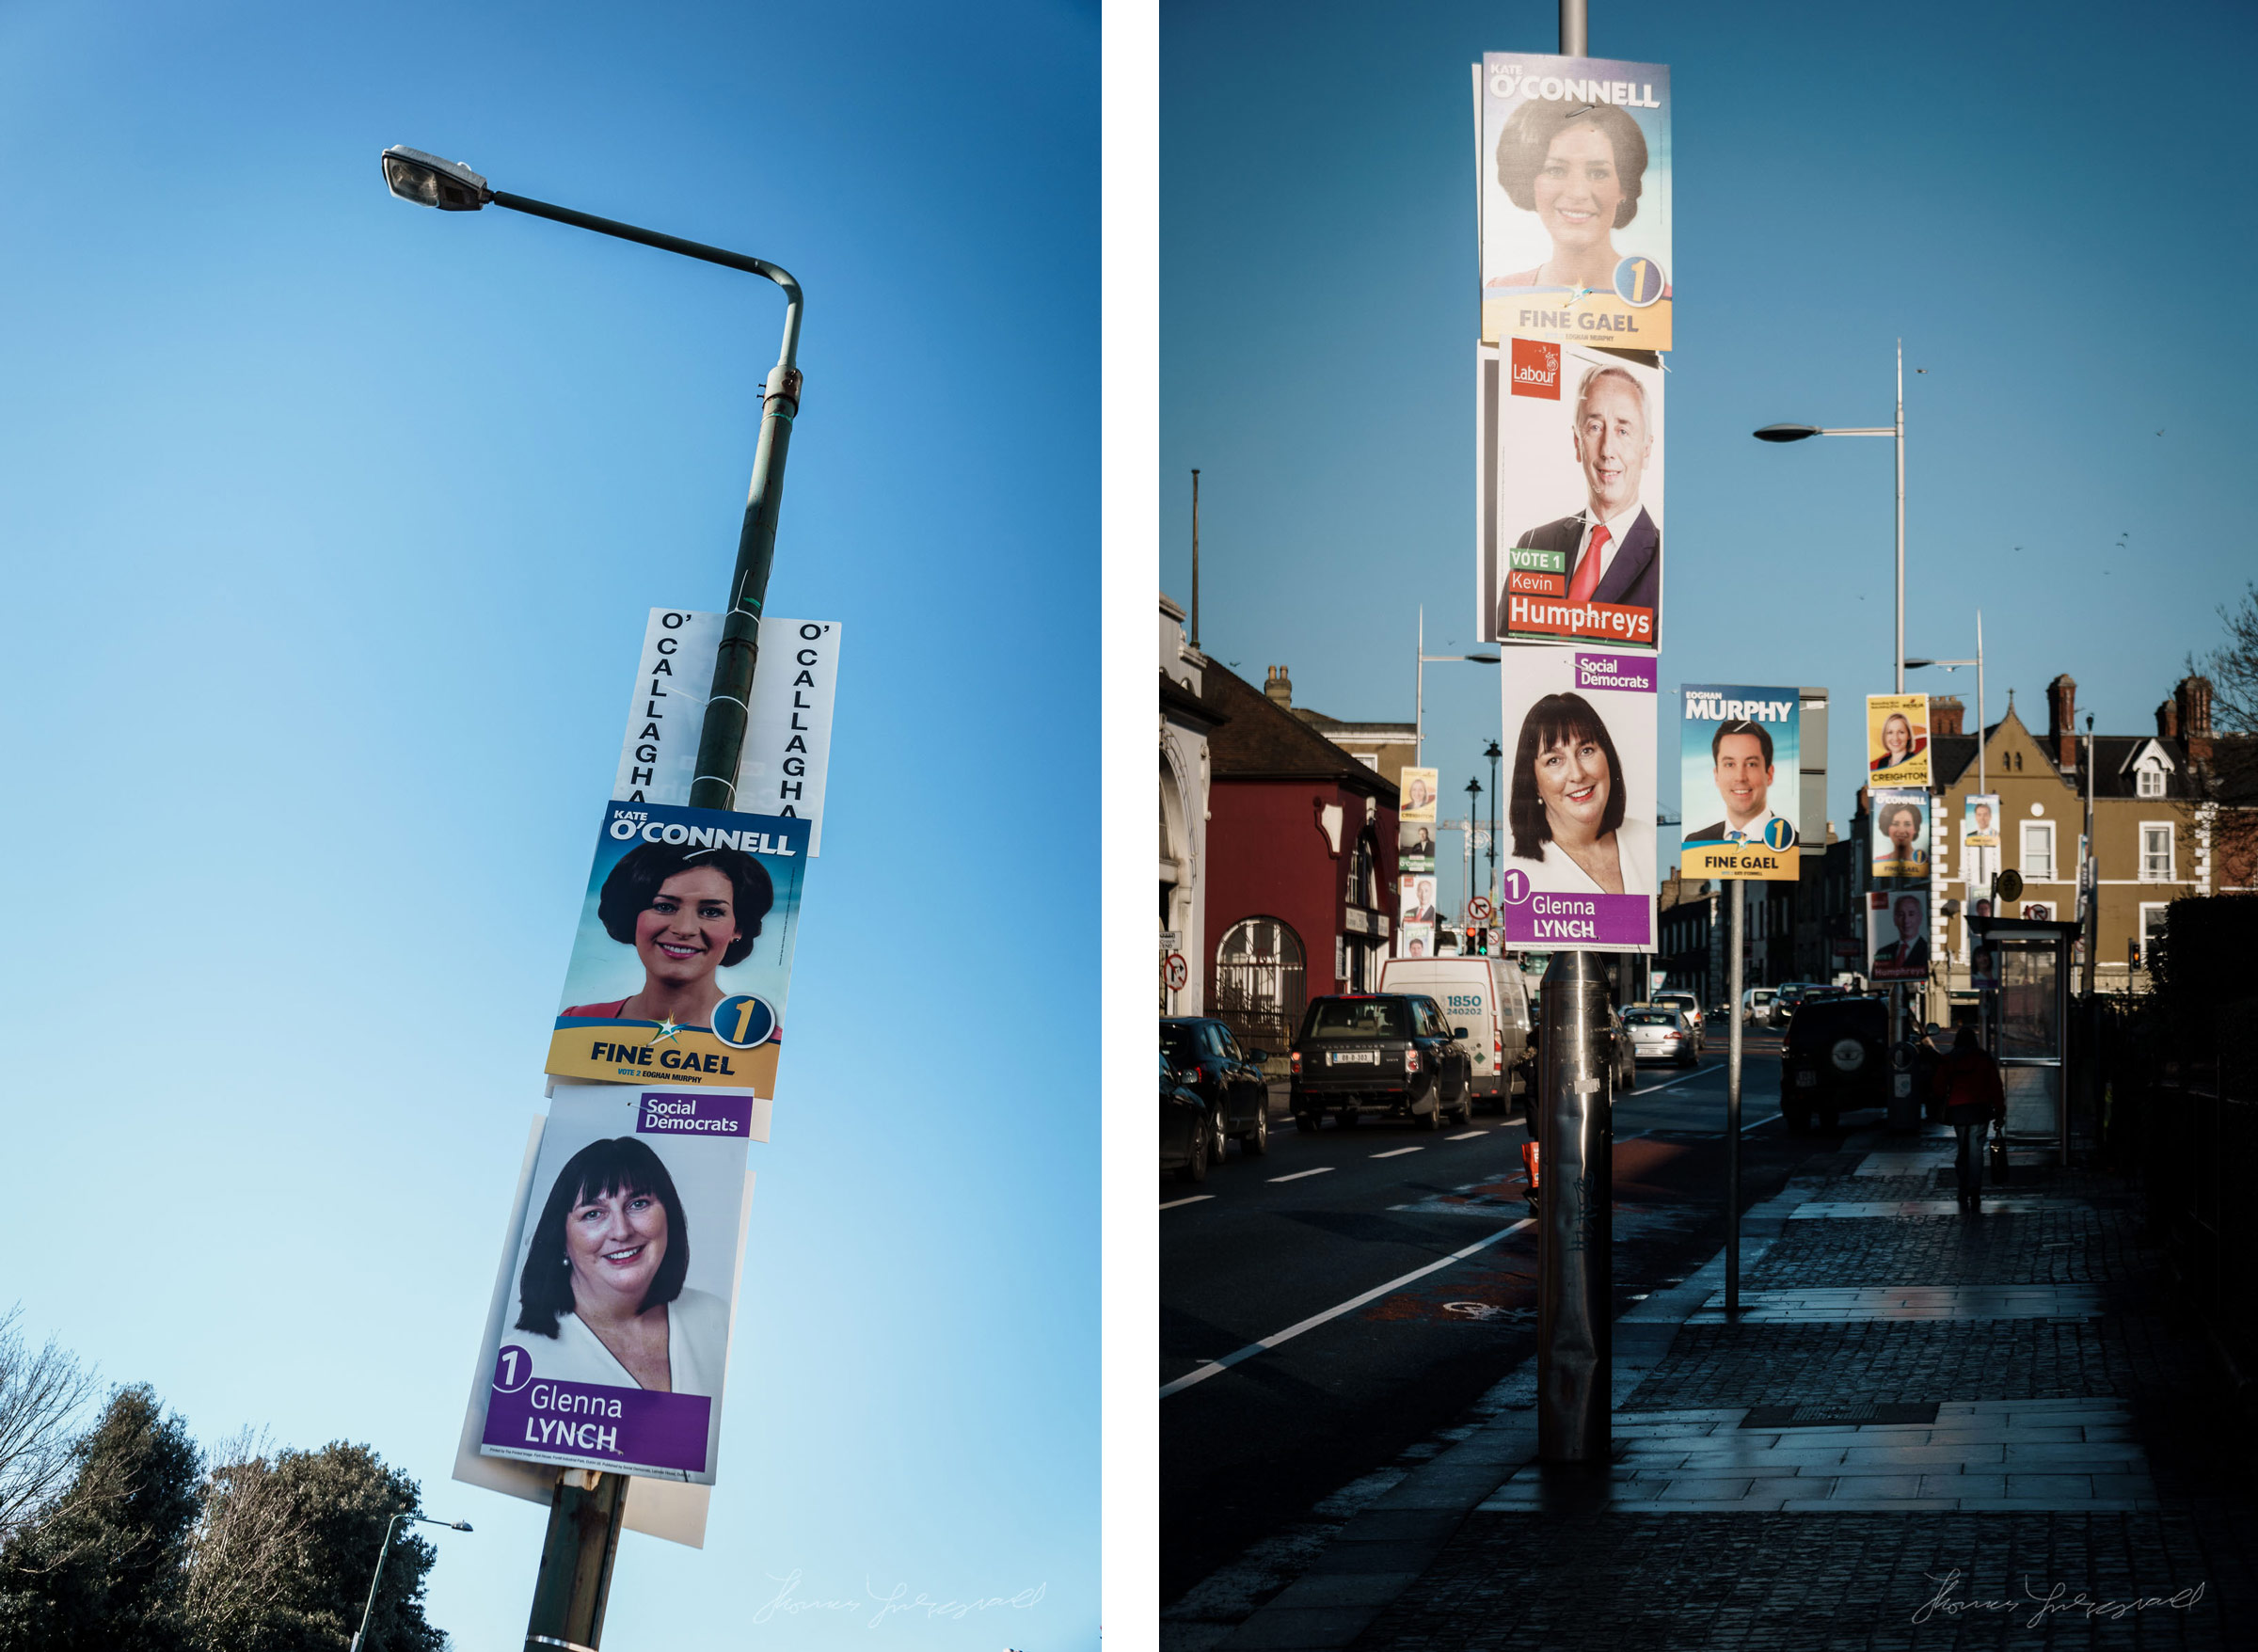 Dublin Election Posters